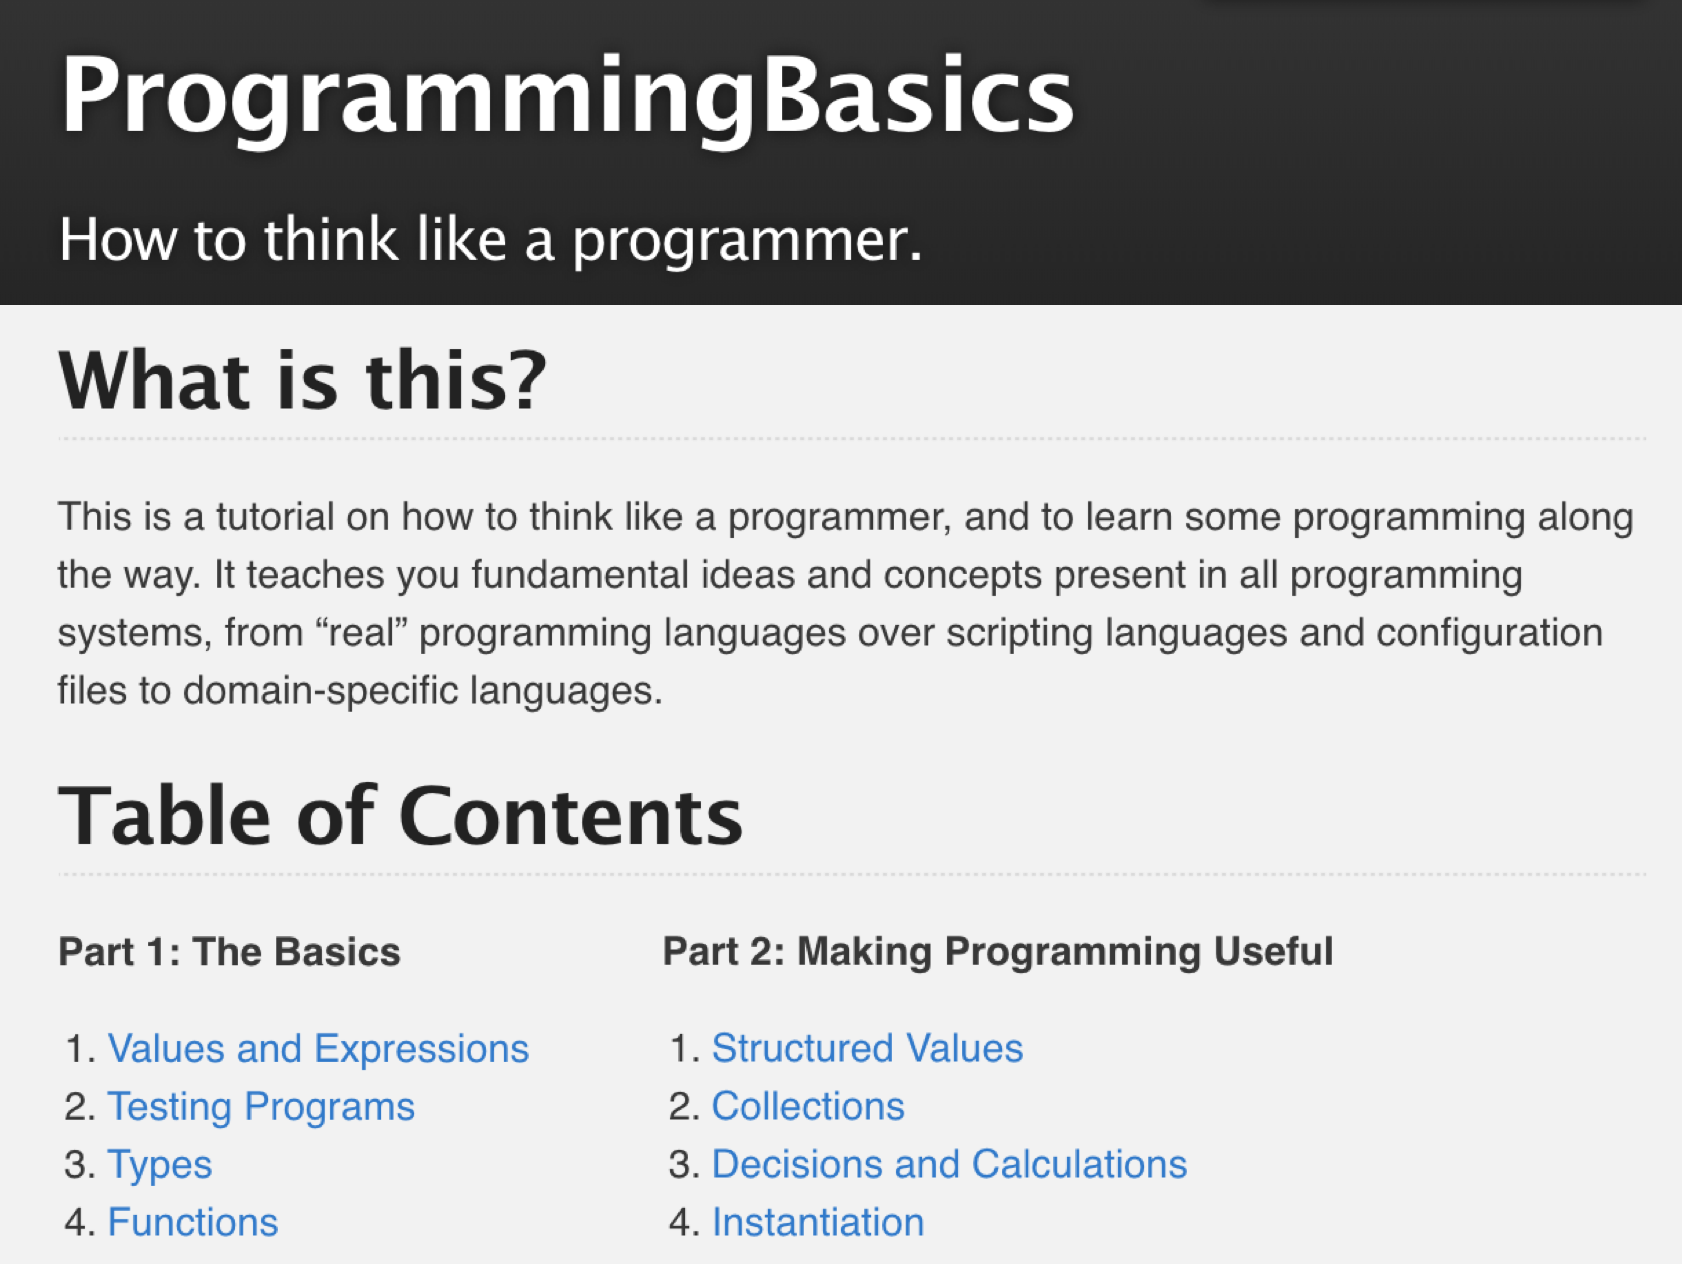 Teaching the Basics of Programming to Domain Experts